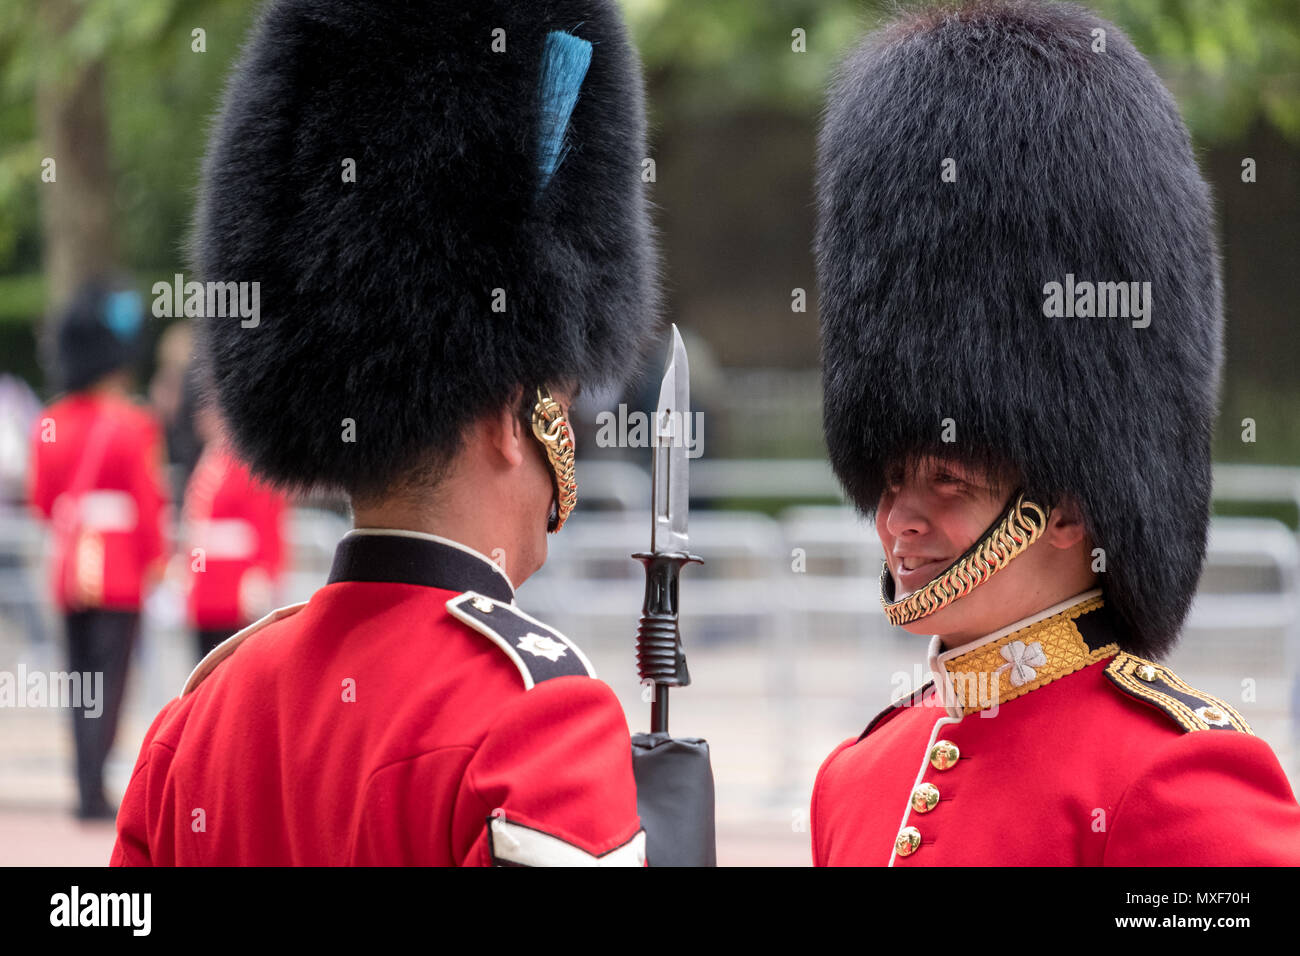 Royal Guard soldiers wearing red and black uniform and bearskin hats  sharing a joke during the Trooping the Colour military parade 11a02b03523c